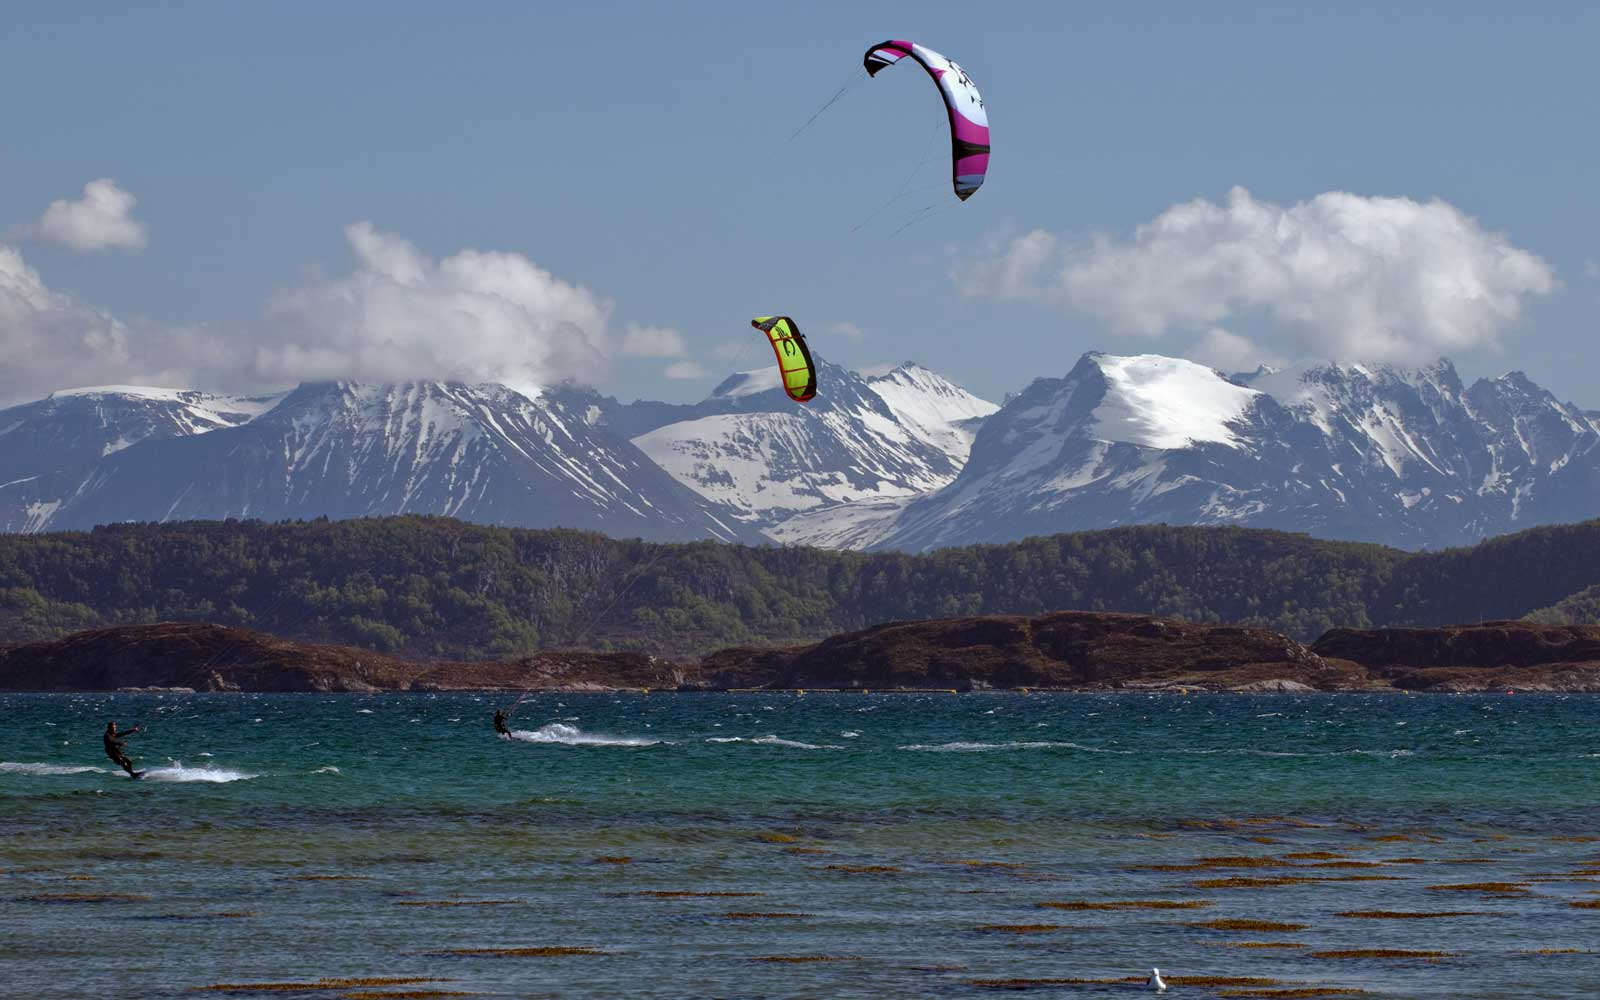 Ålesund Kitesurfing on the coast of Norway